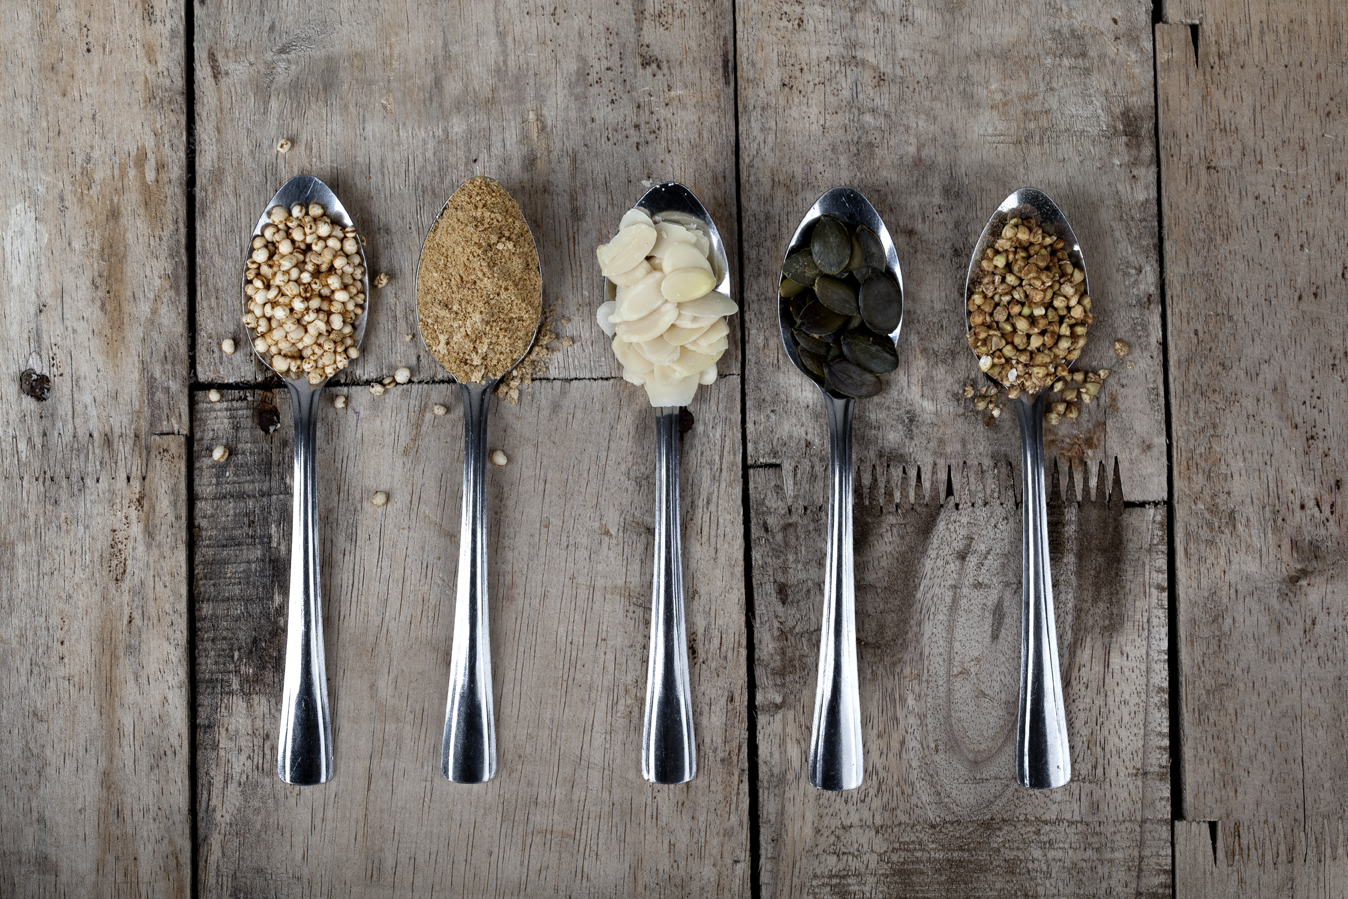 Some of the crumble topping ingredients: puffed quinoa, rapadura sugar, flaked almonds, pepitas and buckwheat.